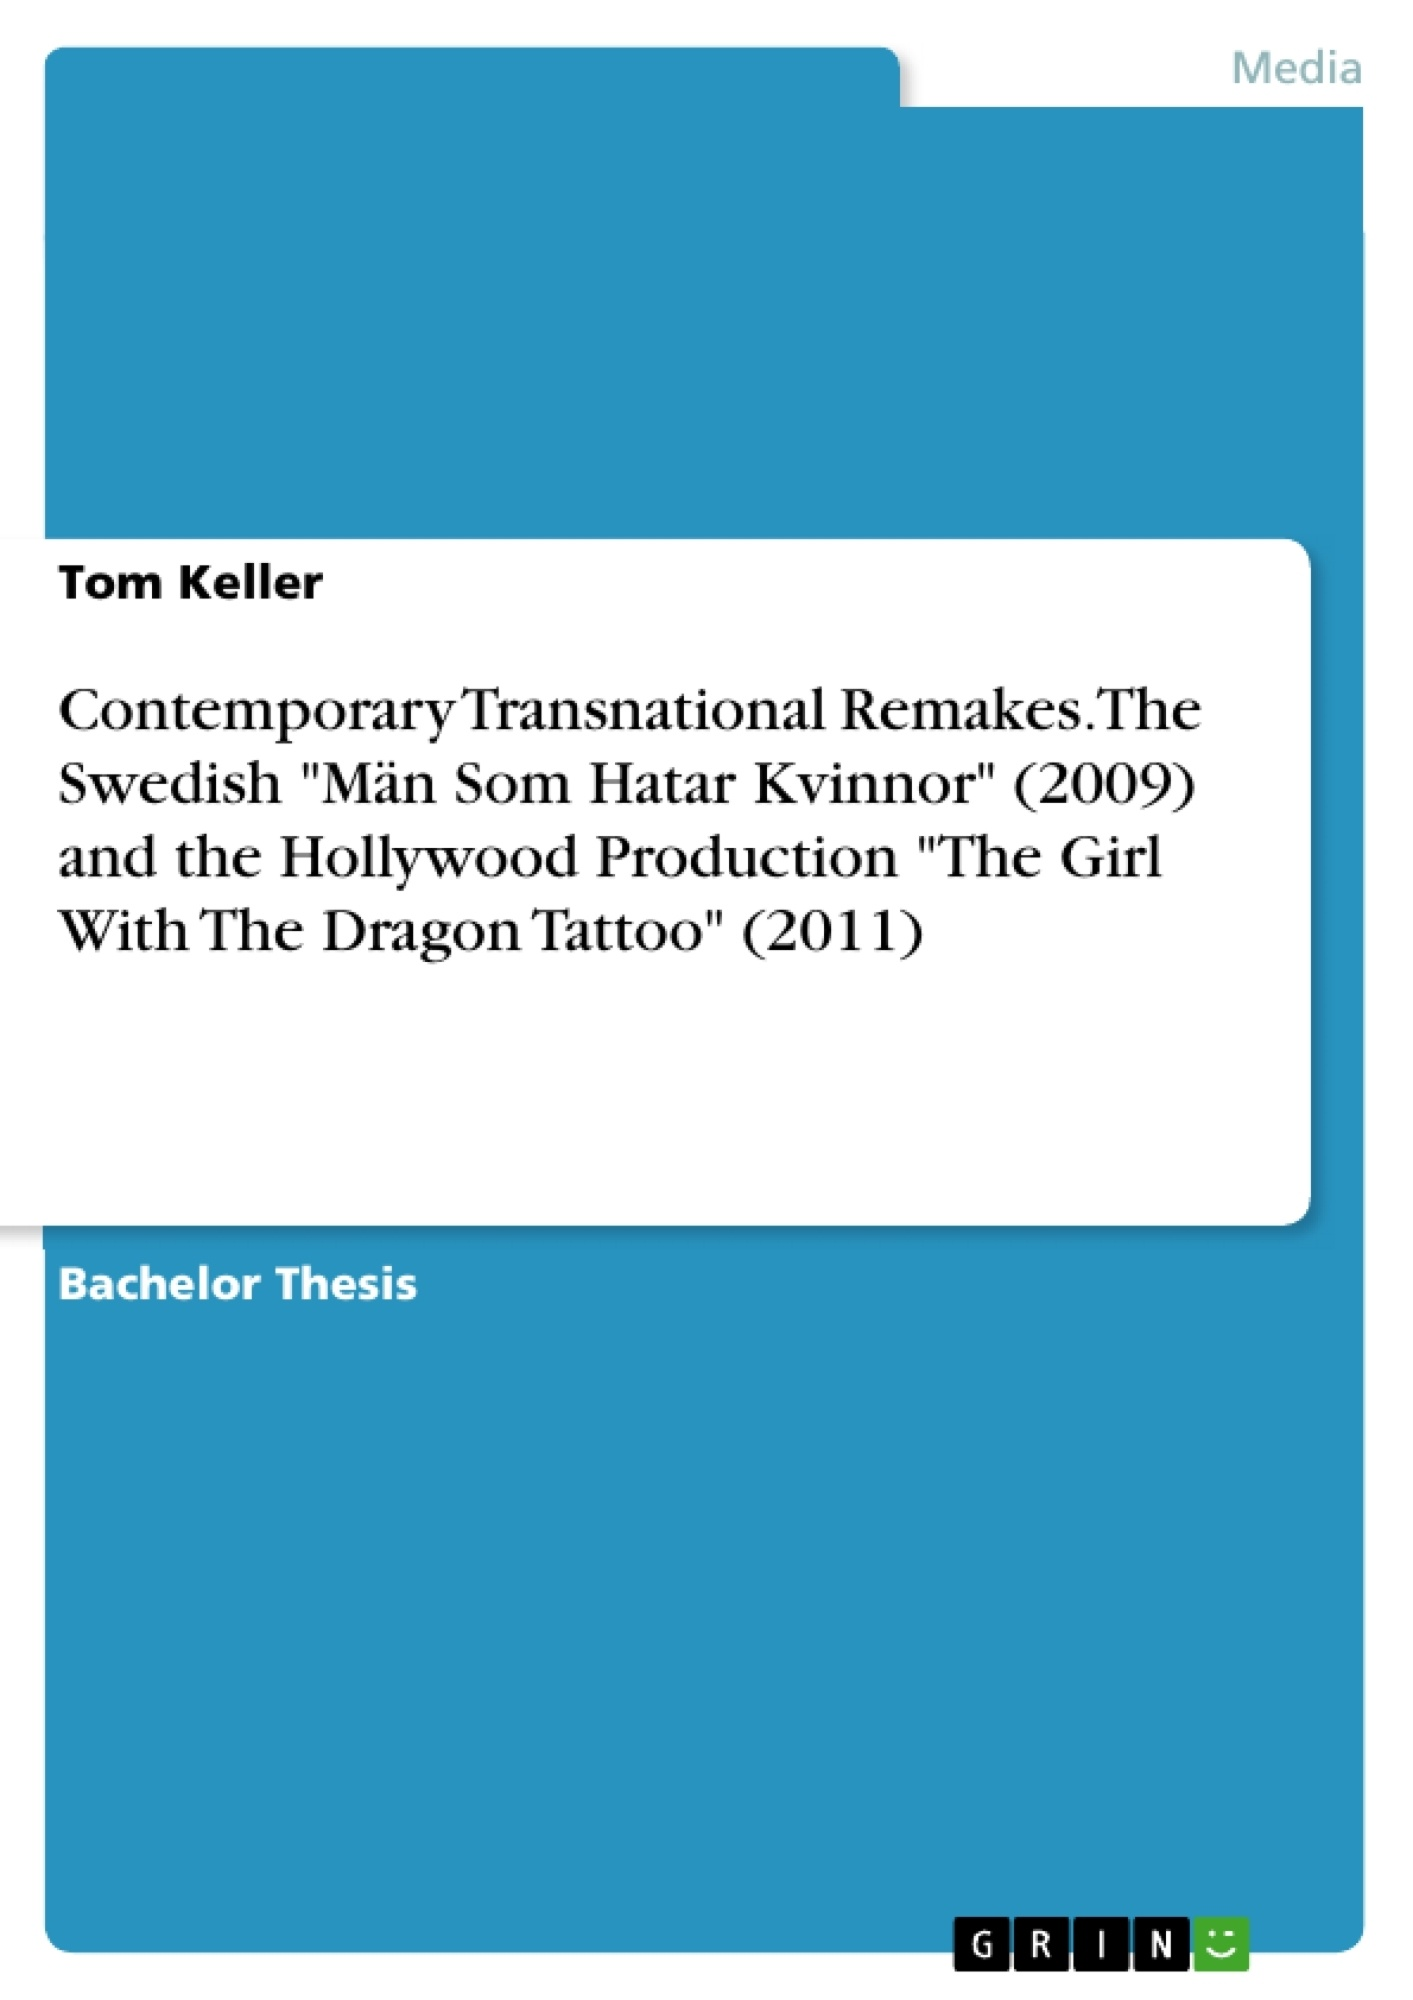 """Title: Contemporary Transnational Remakes. The Swedish """"Män Som Hatar Kvinnor"""" (2009) and the Hollywood Production """"The Girl With The Dragon Tattoo"""" (2011)"""